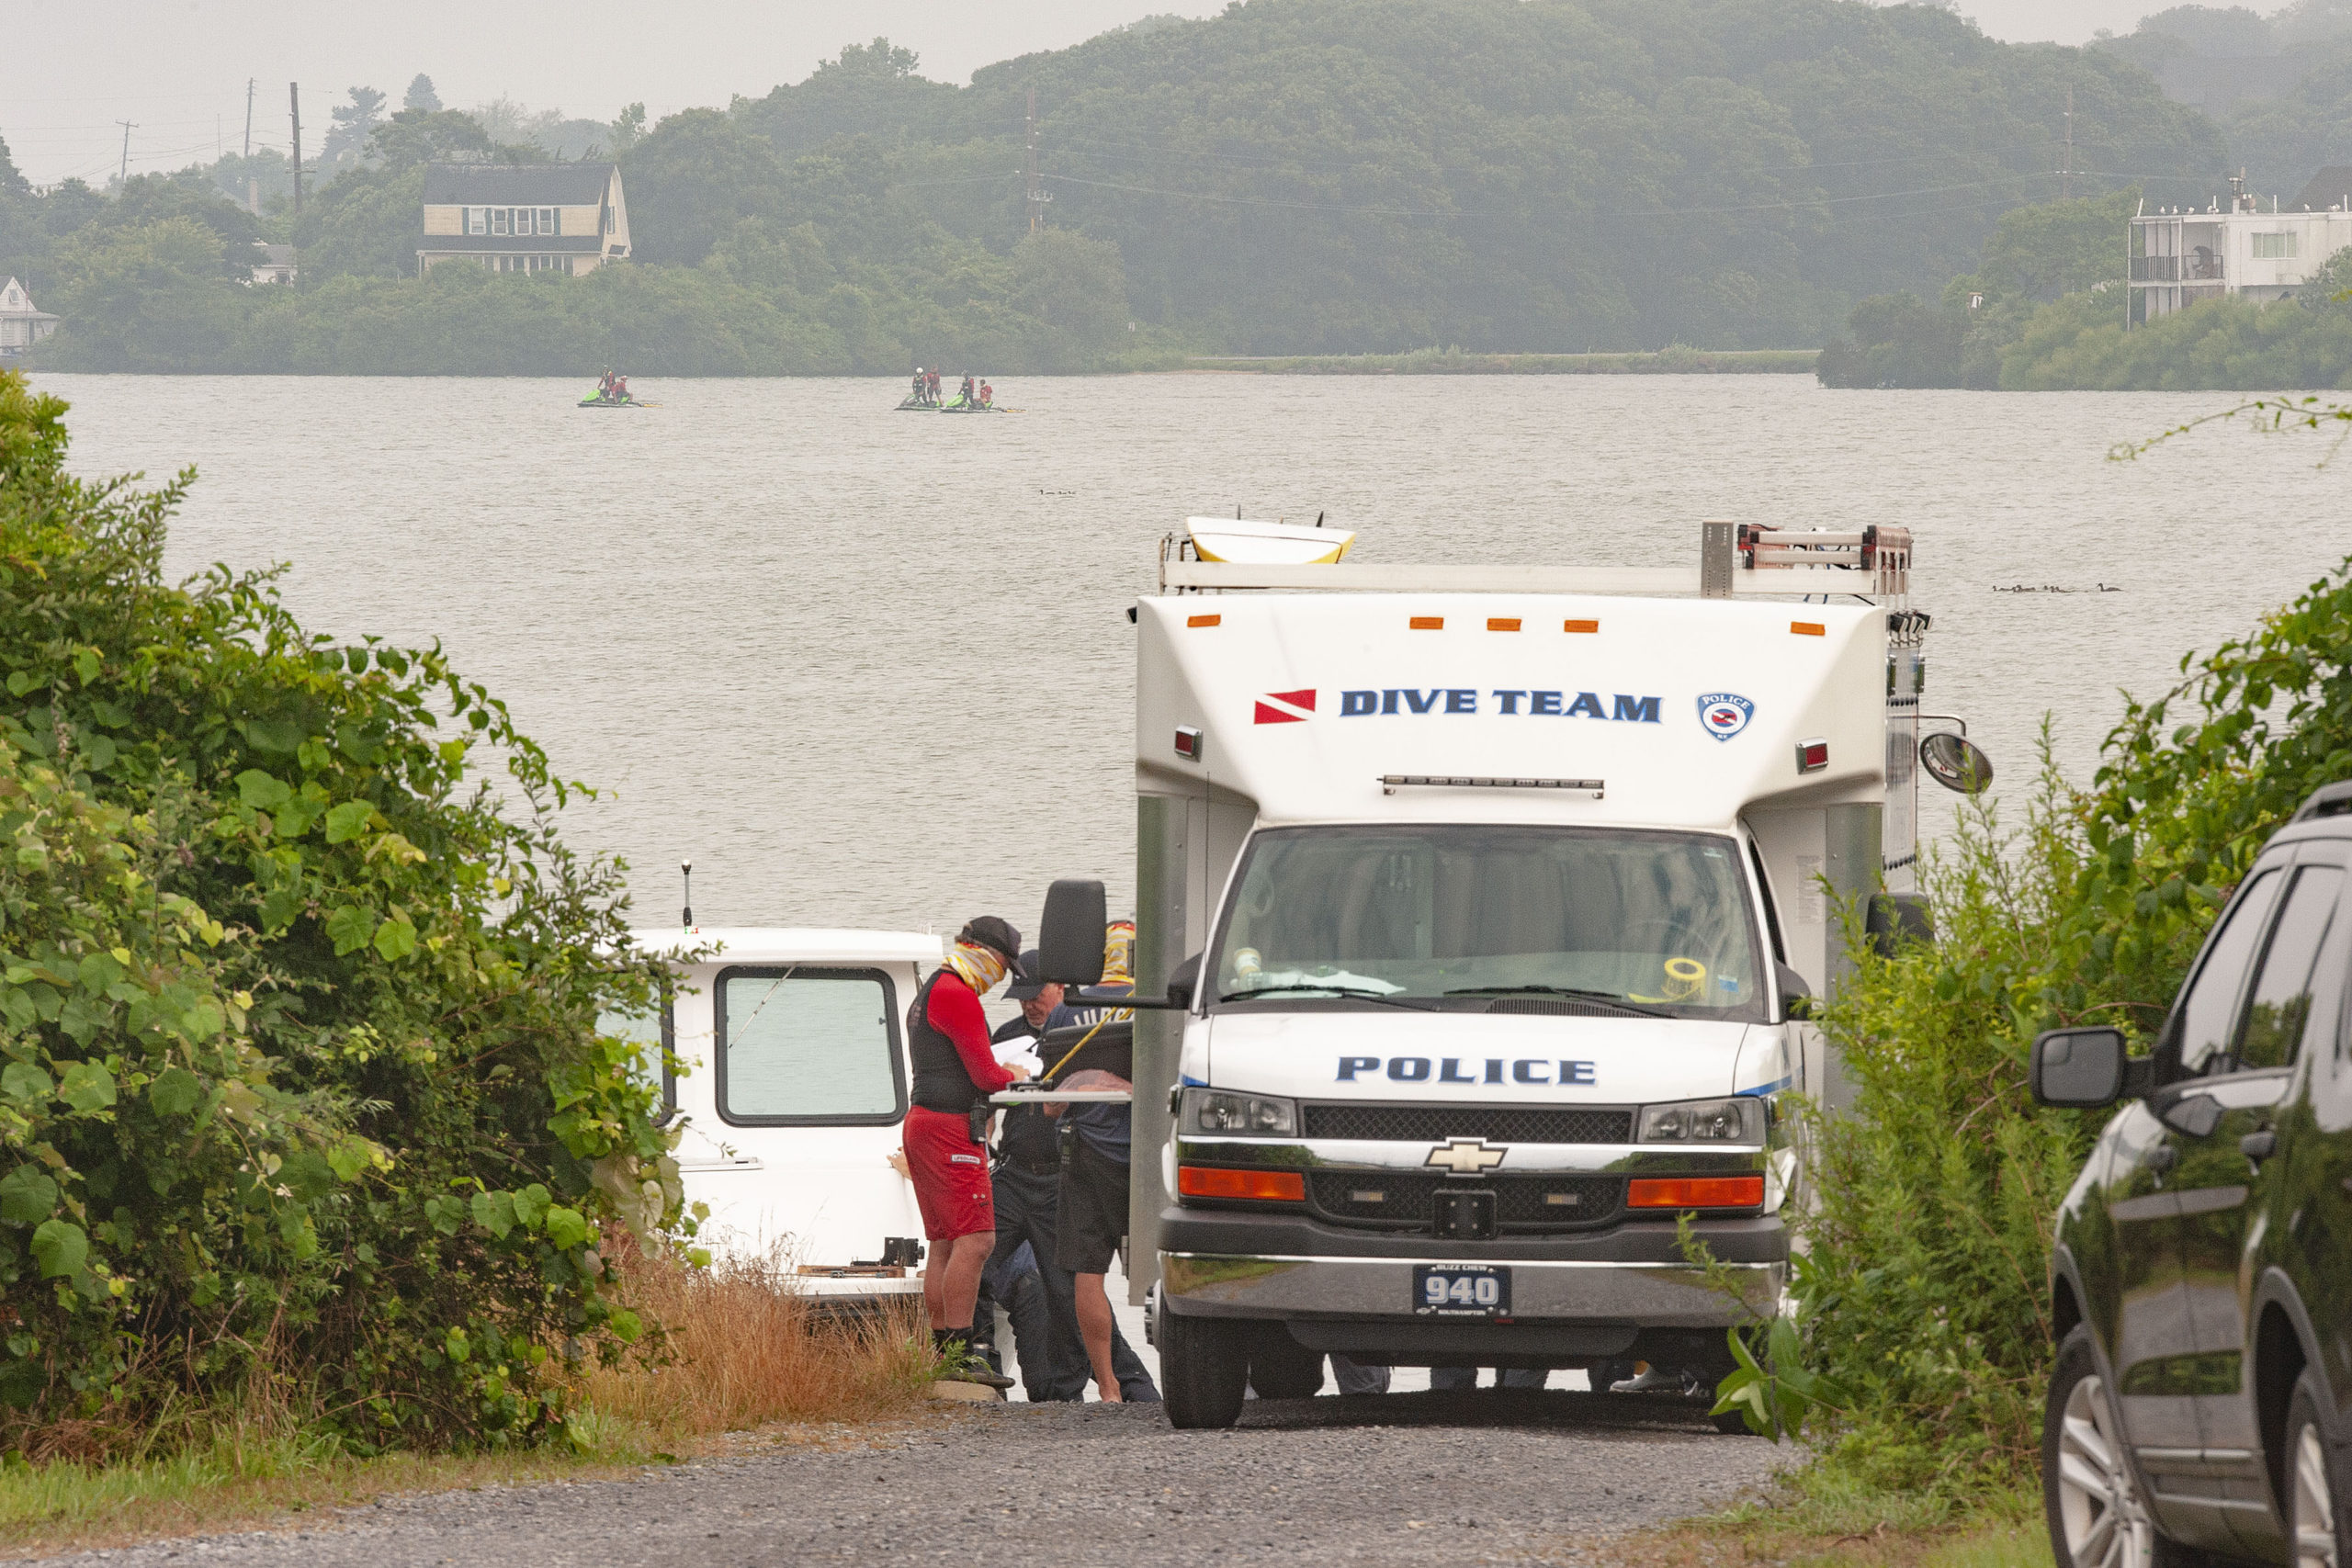 Dive teams and lifeguards resumed searching for the missing swimmer on Monday morning.